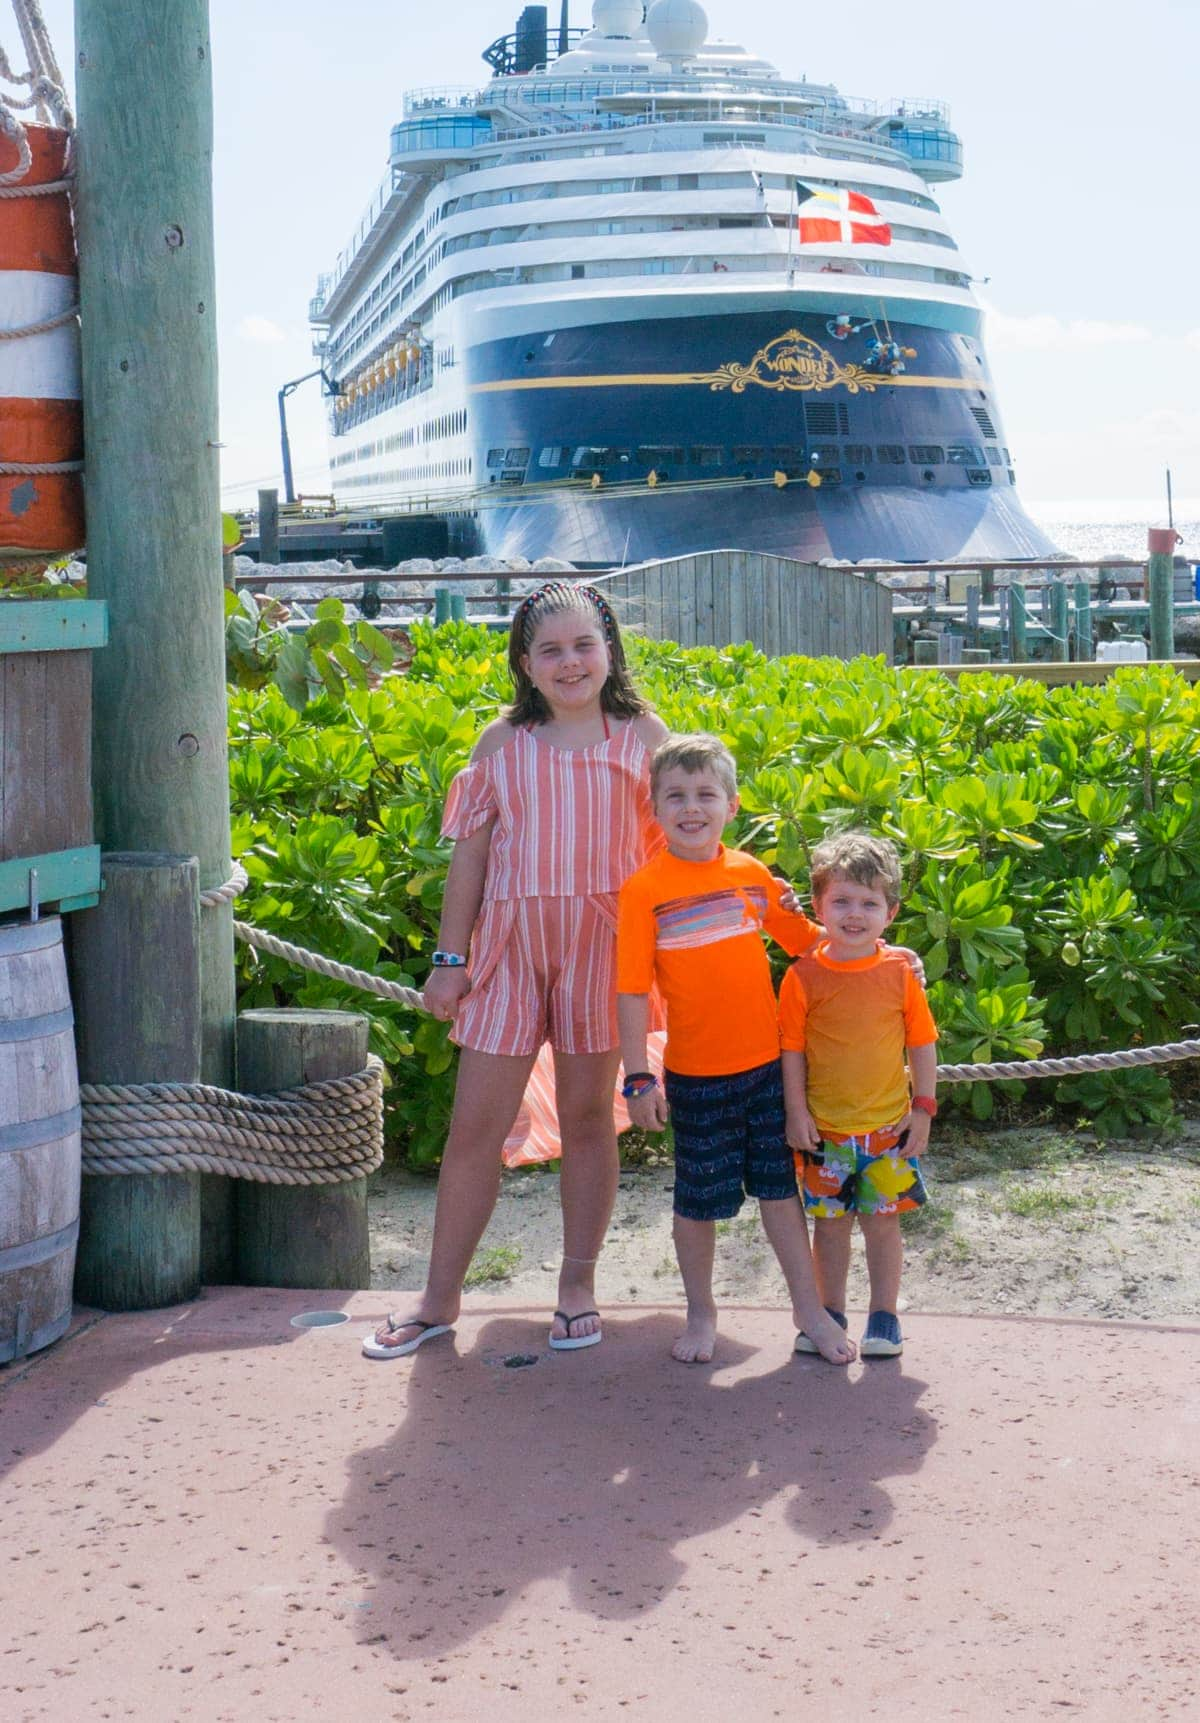 The kids with the Disney cruise ship behind them